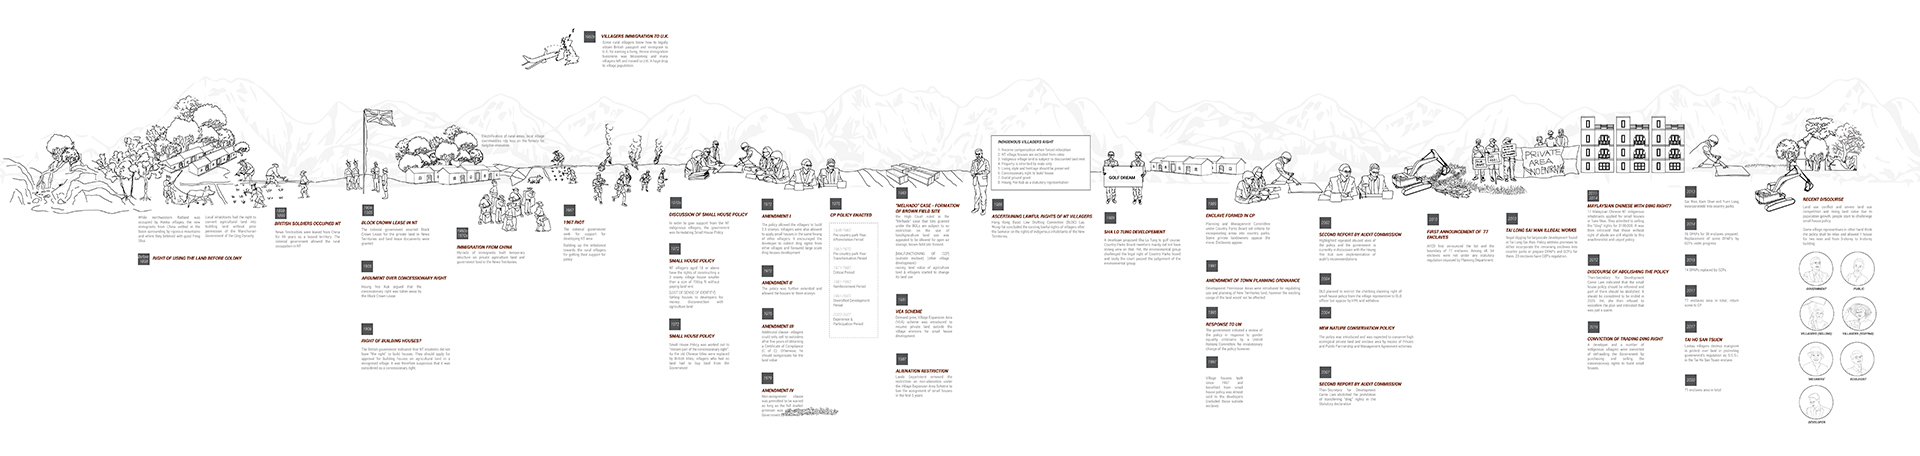 Enlarge Photo: Timeline of the Country Park Policy, Small House Policy, and Enclave Policy. By KWONG Wai Lam Rae.